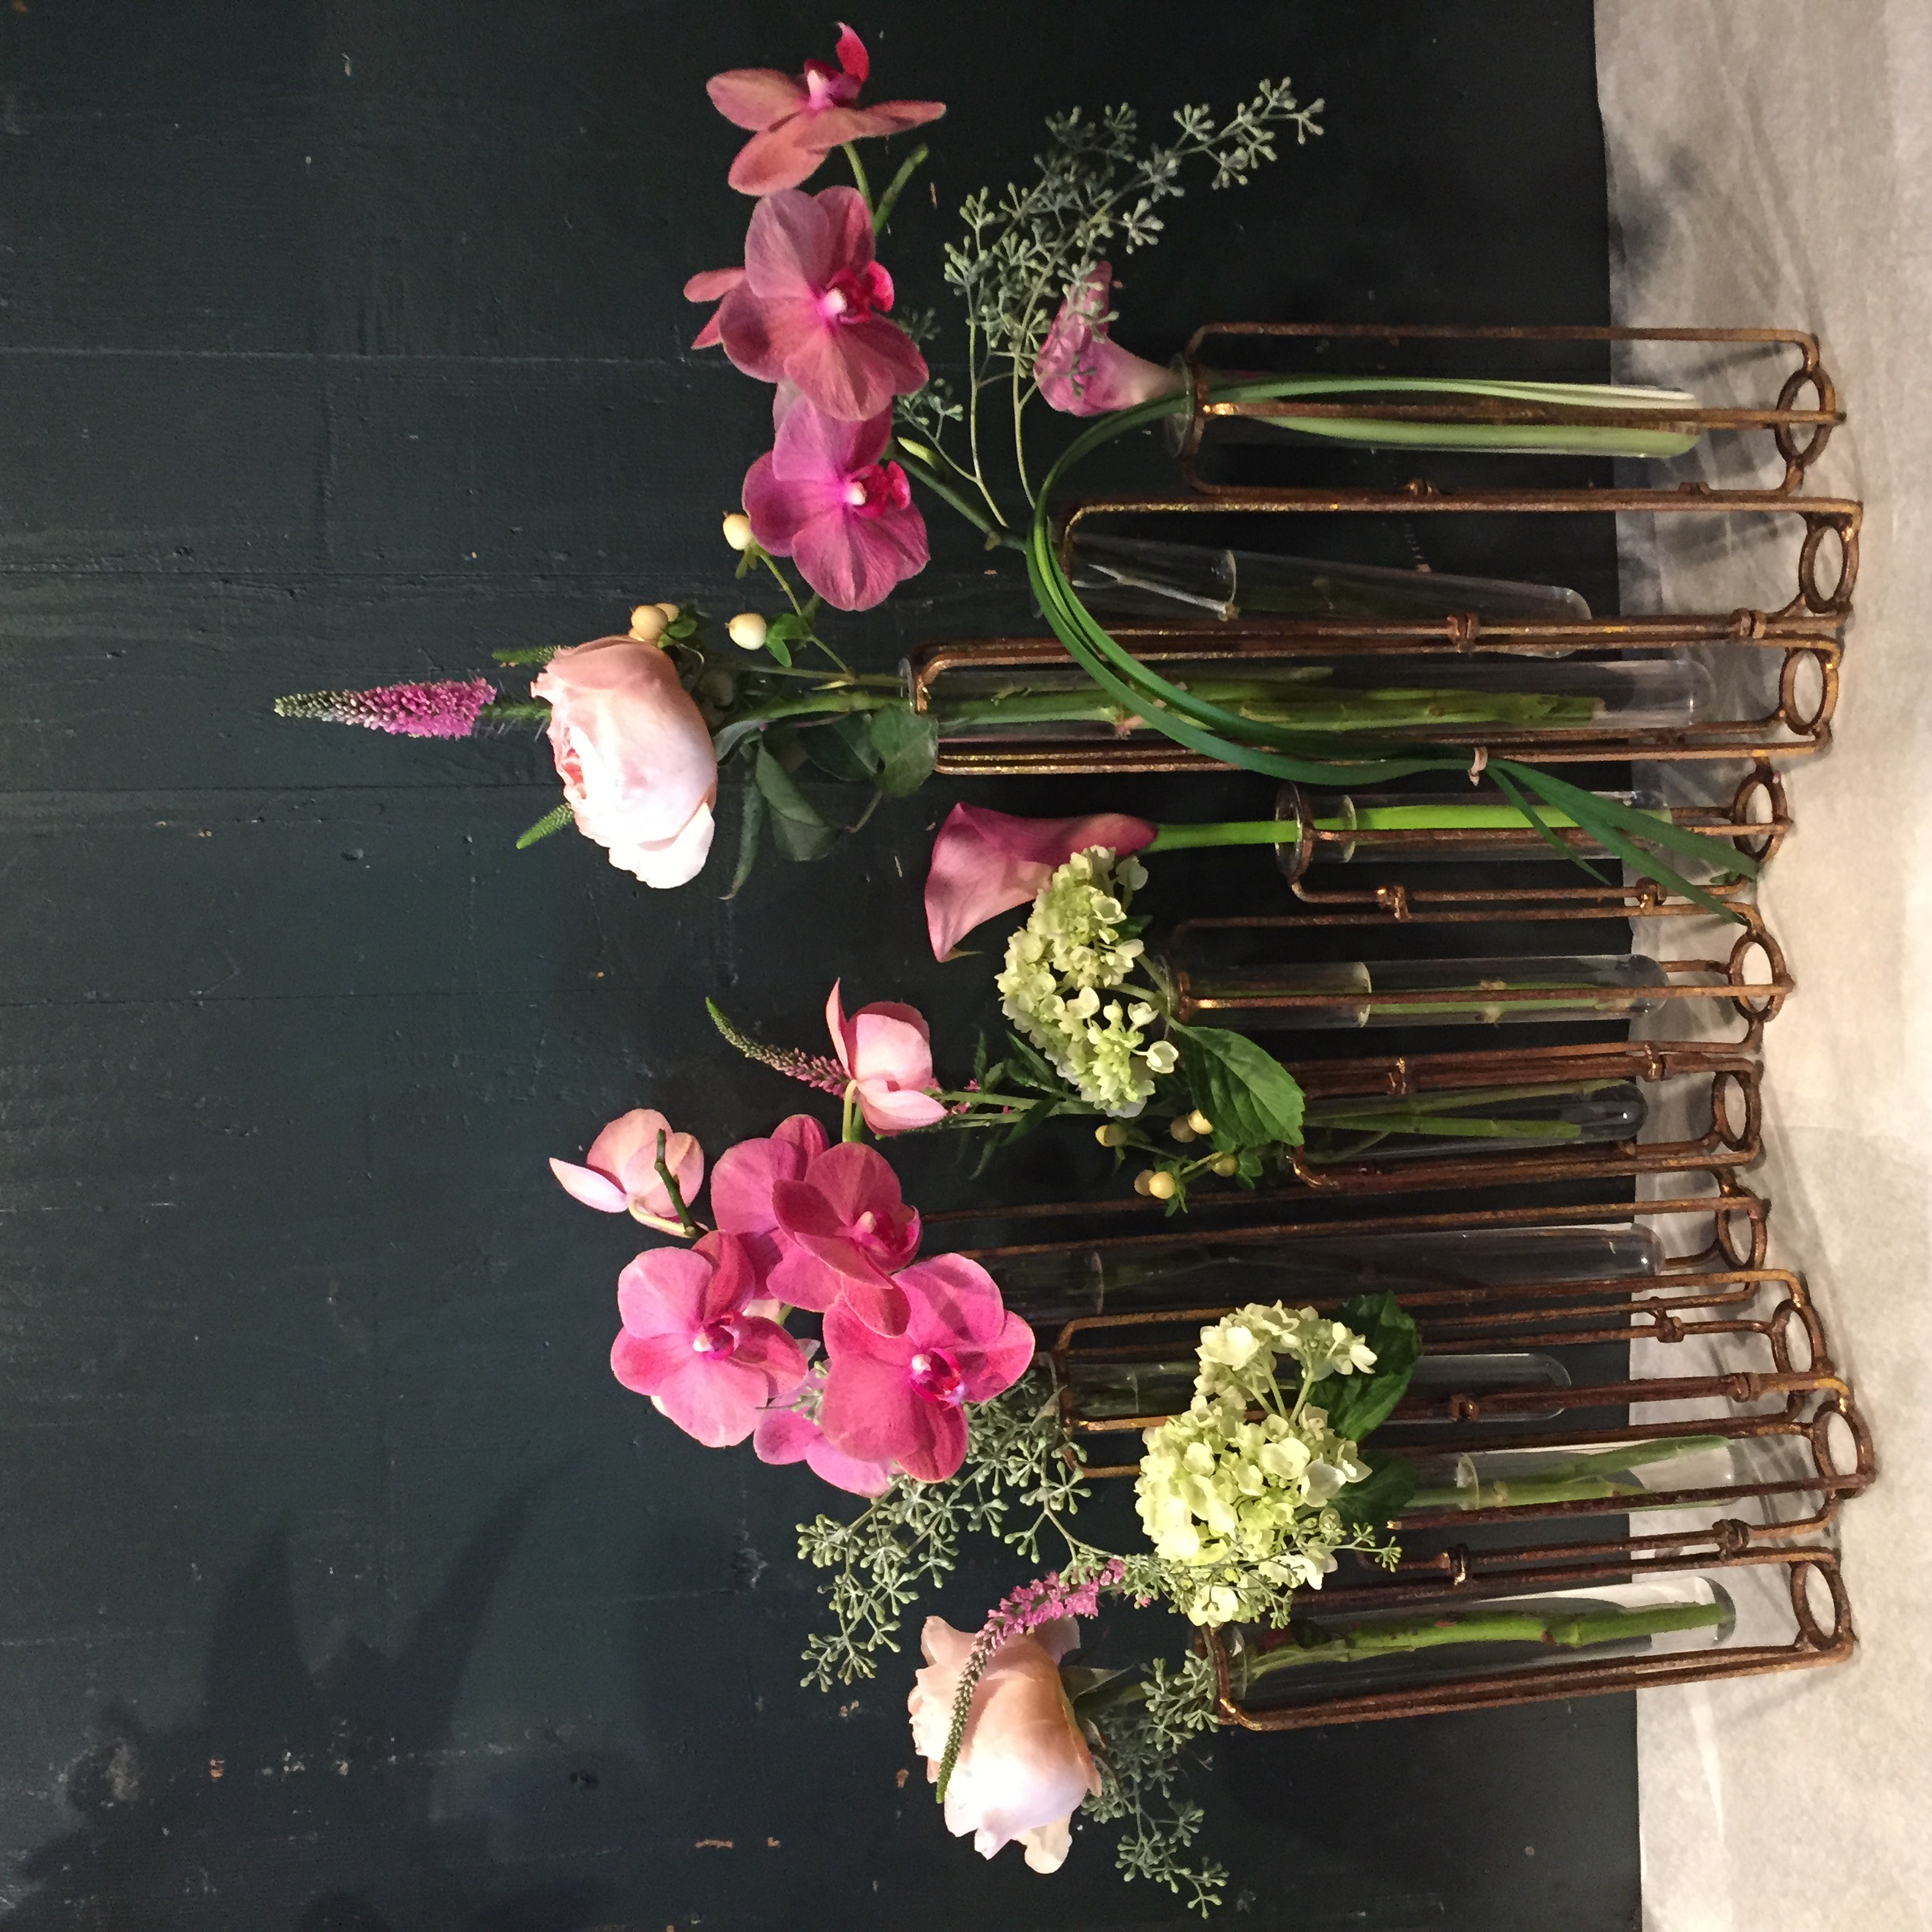 """We find that using traditional """"gardeny"""" cut flowers such as garden roses and veronica providea lovely softcontrast to the smartmetal anglesof theframe."""